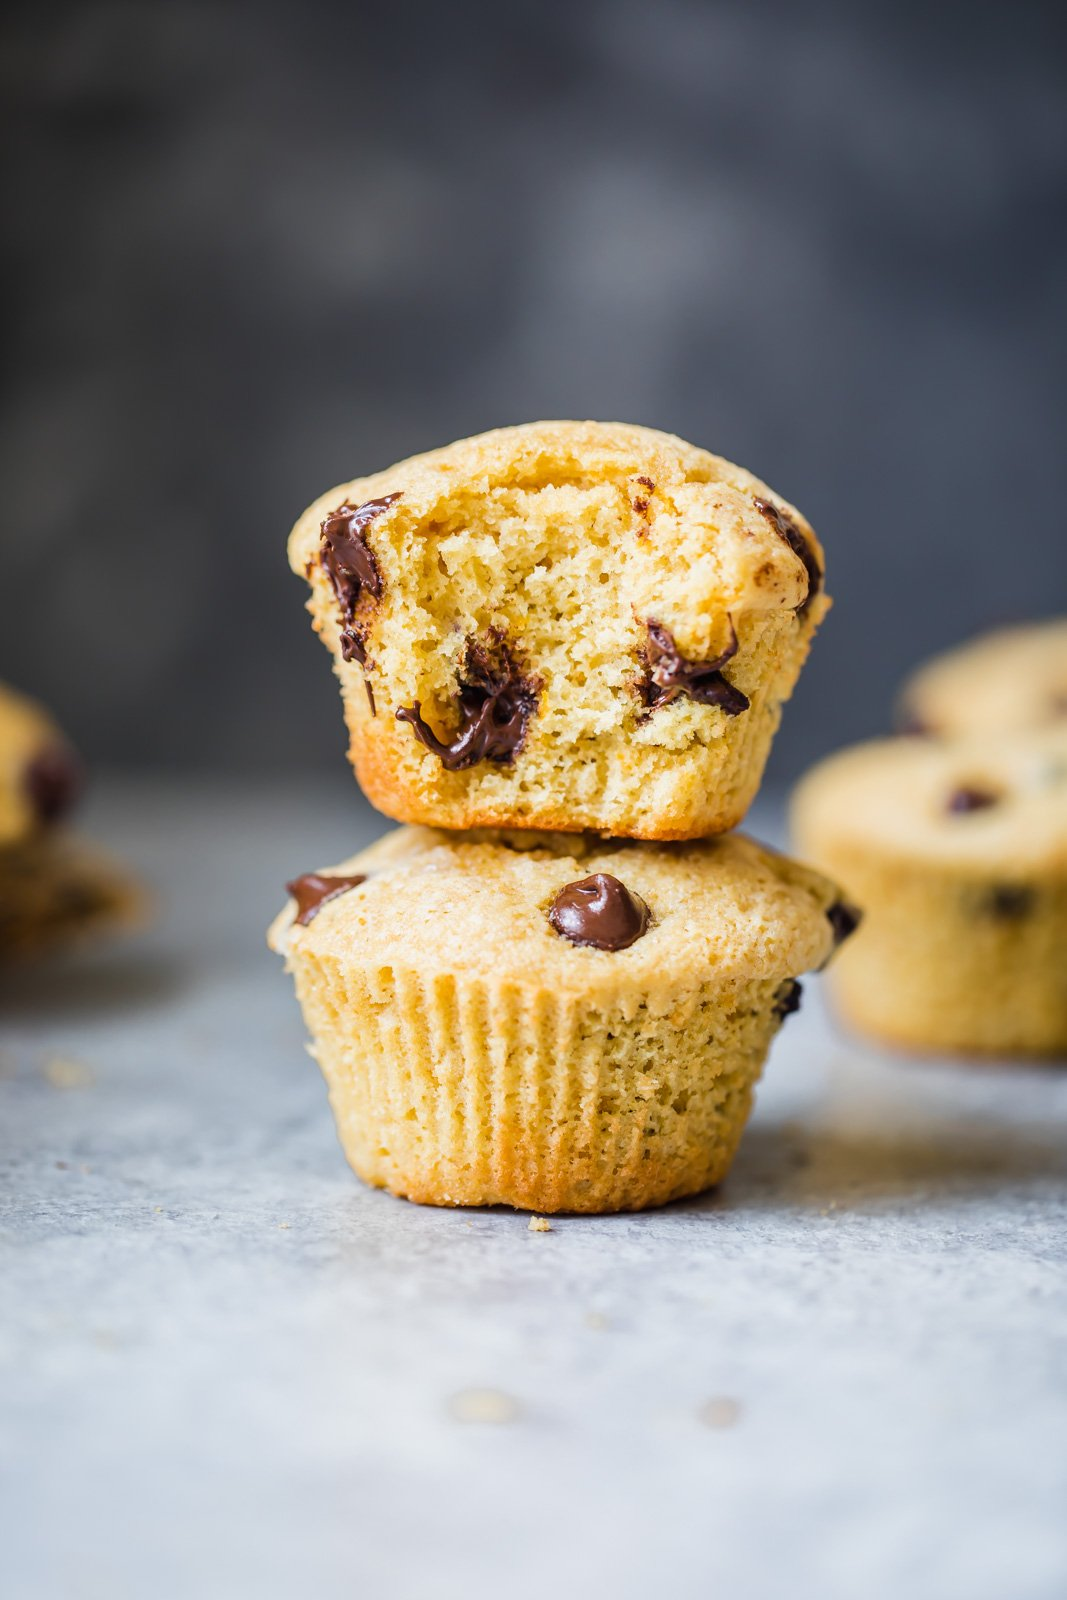 Two orange chocolate chip muffins stacked